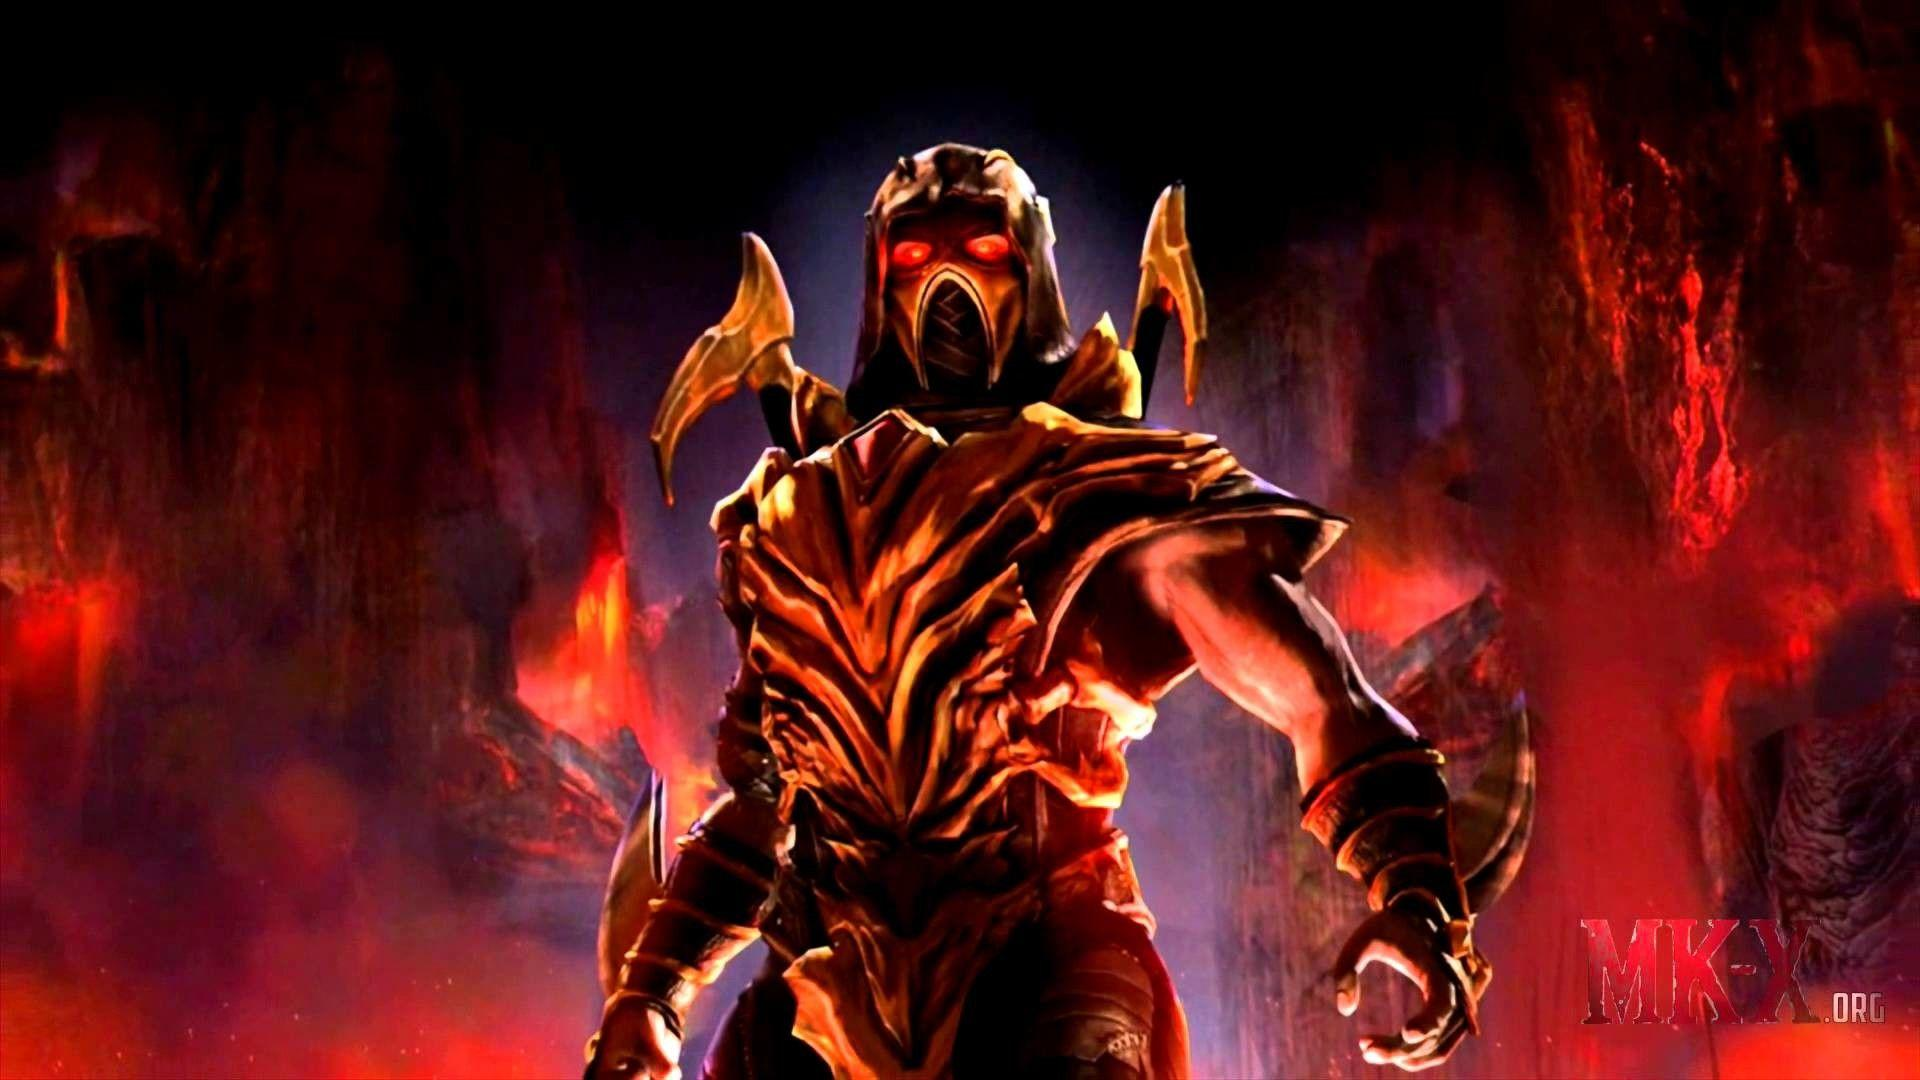 Mortal Kombat X Scorpion Wallpapers 74+